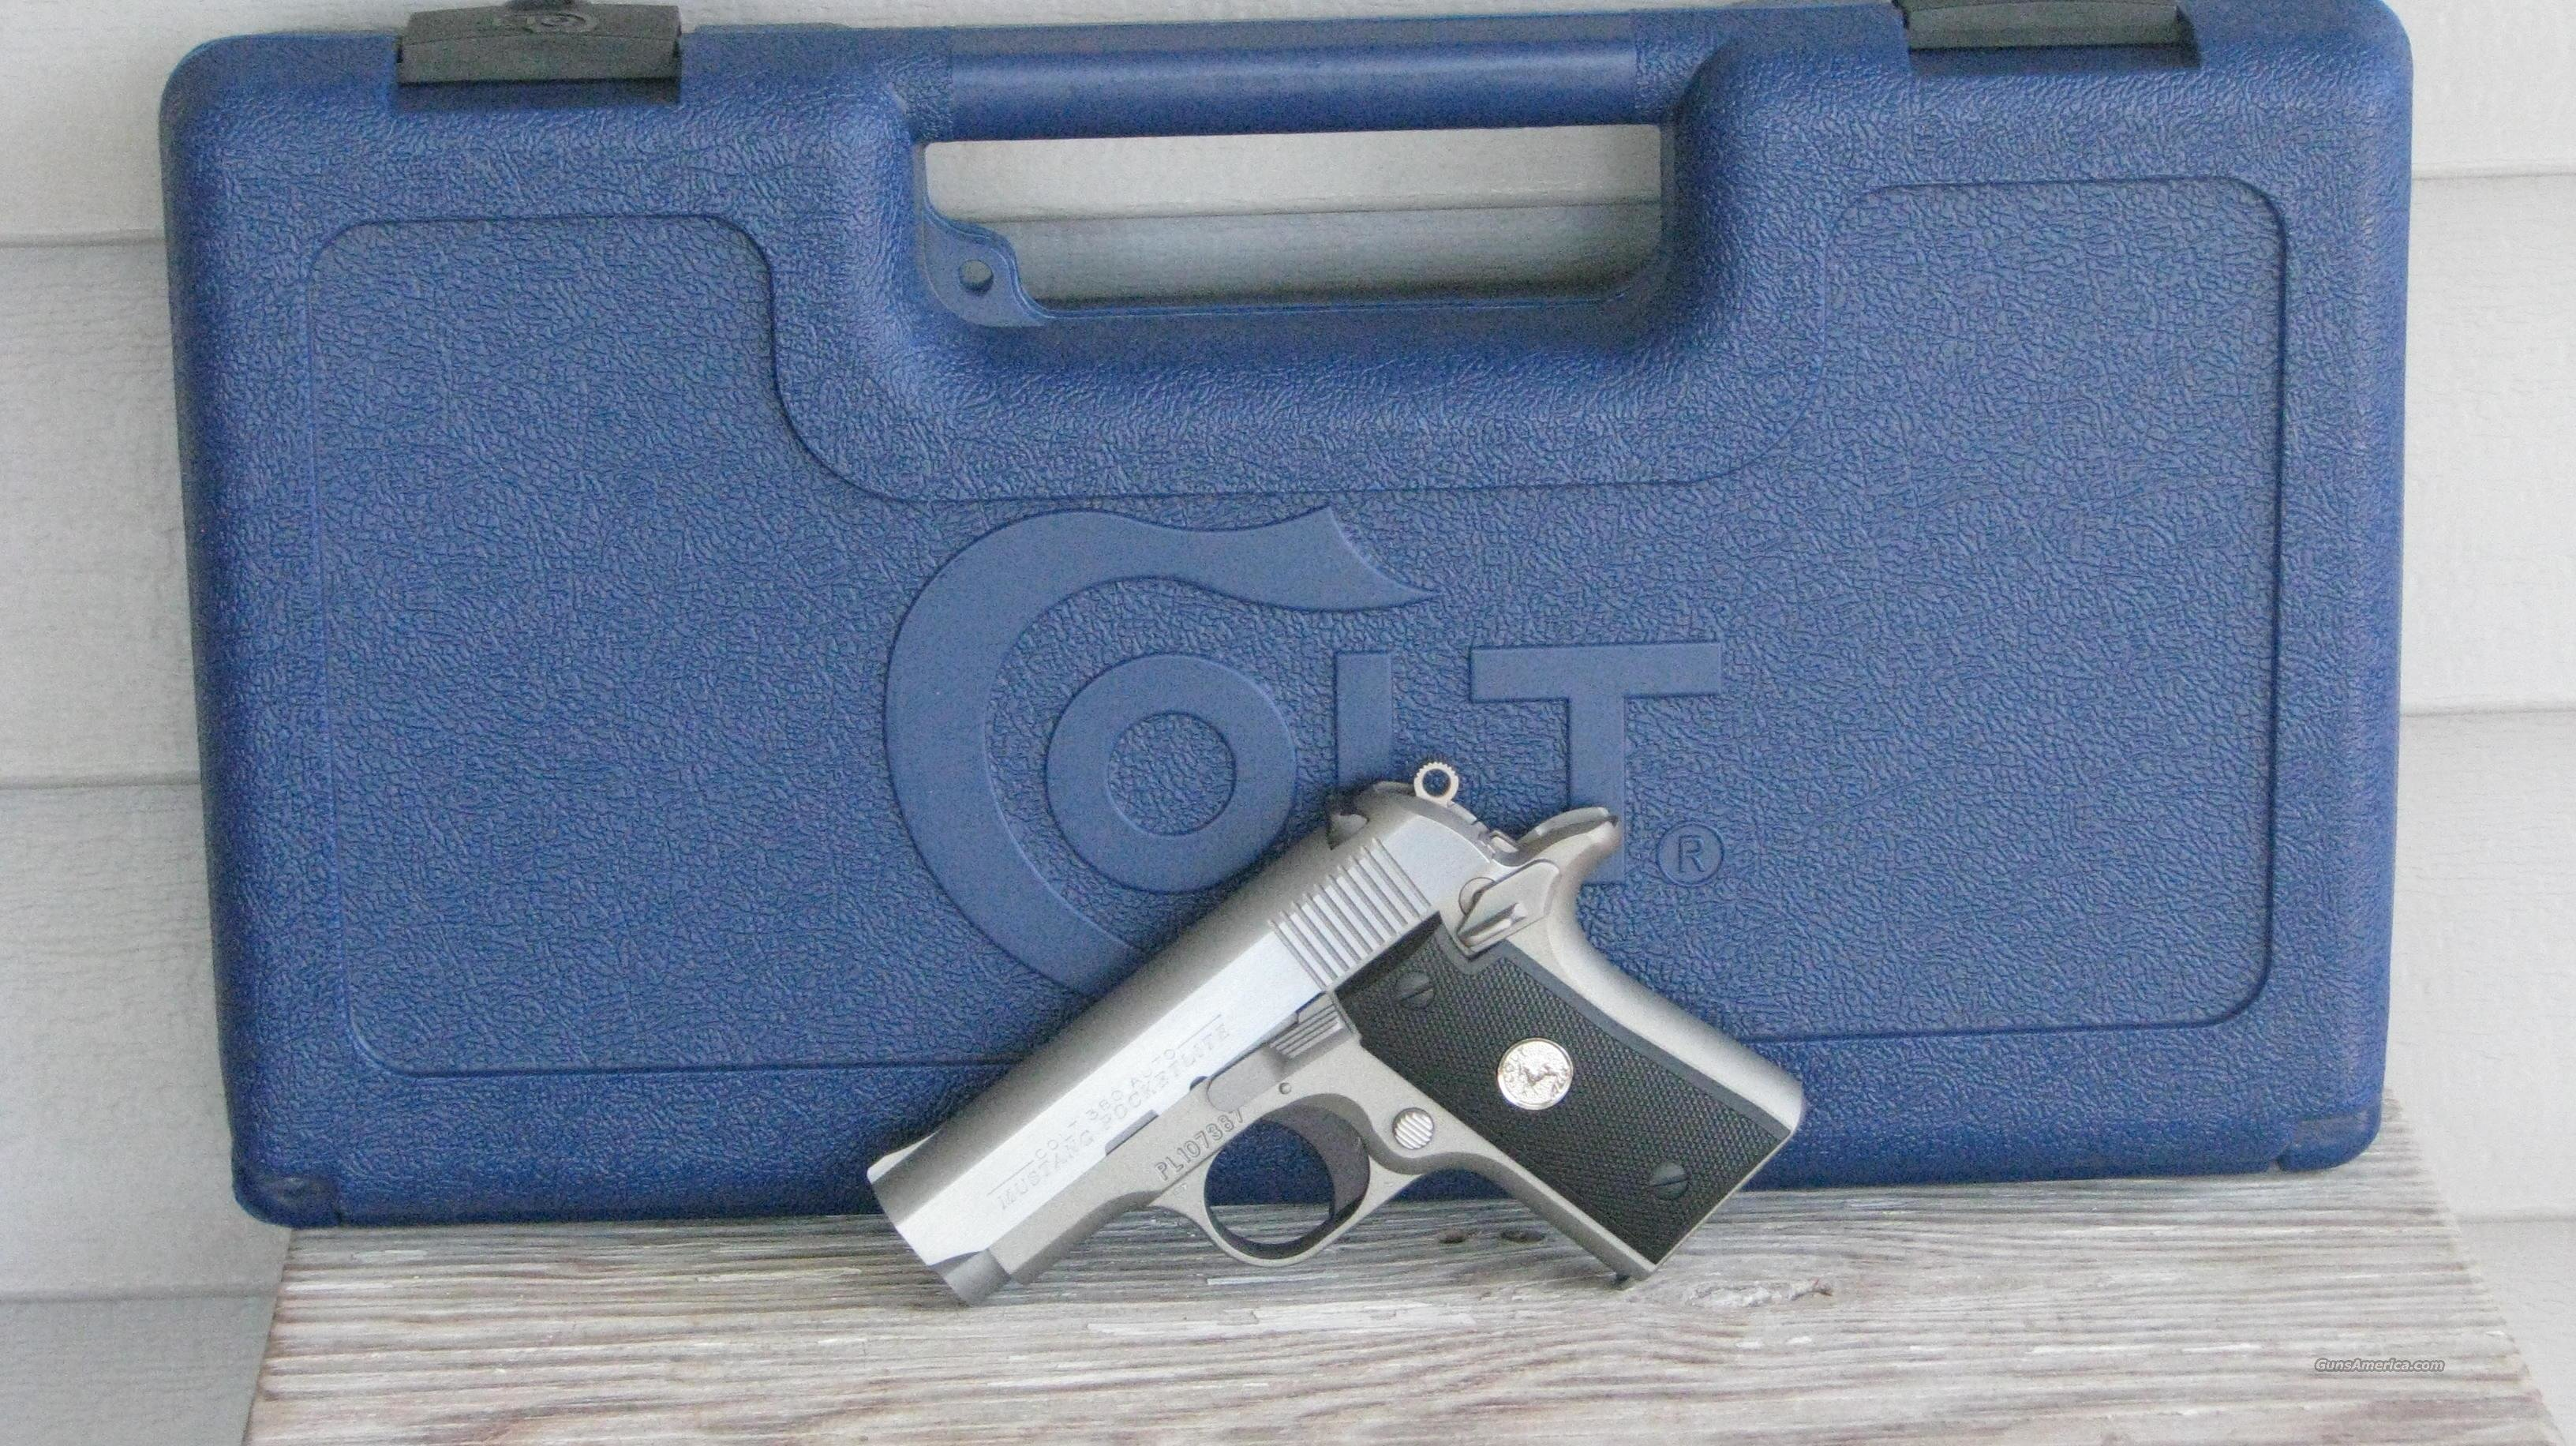 COLT MUSTANG POCKETLITE 1911 O6891 /EASY PAY $63 Monthly  Guns > Pistols > Colt Automatic Pistols (.25, .32, & .380 cal)